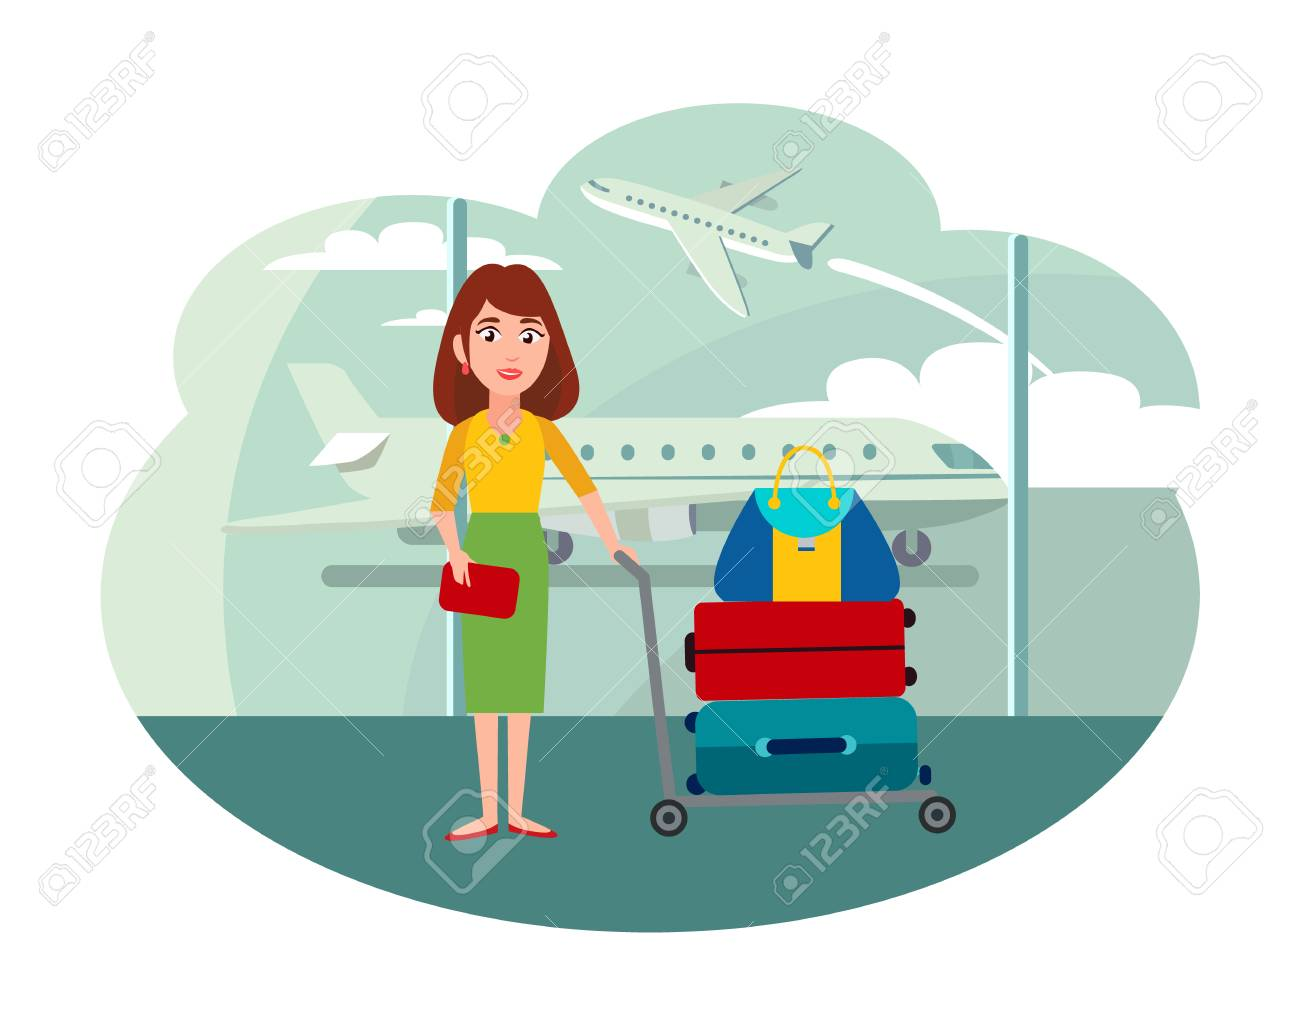 Woman with Trolley full of Baggage at Airport - 109941089